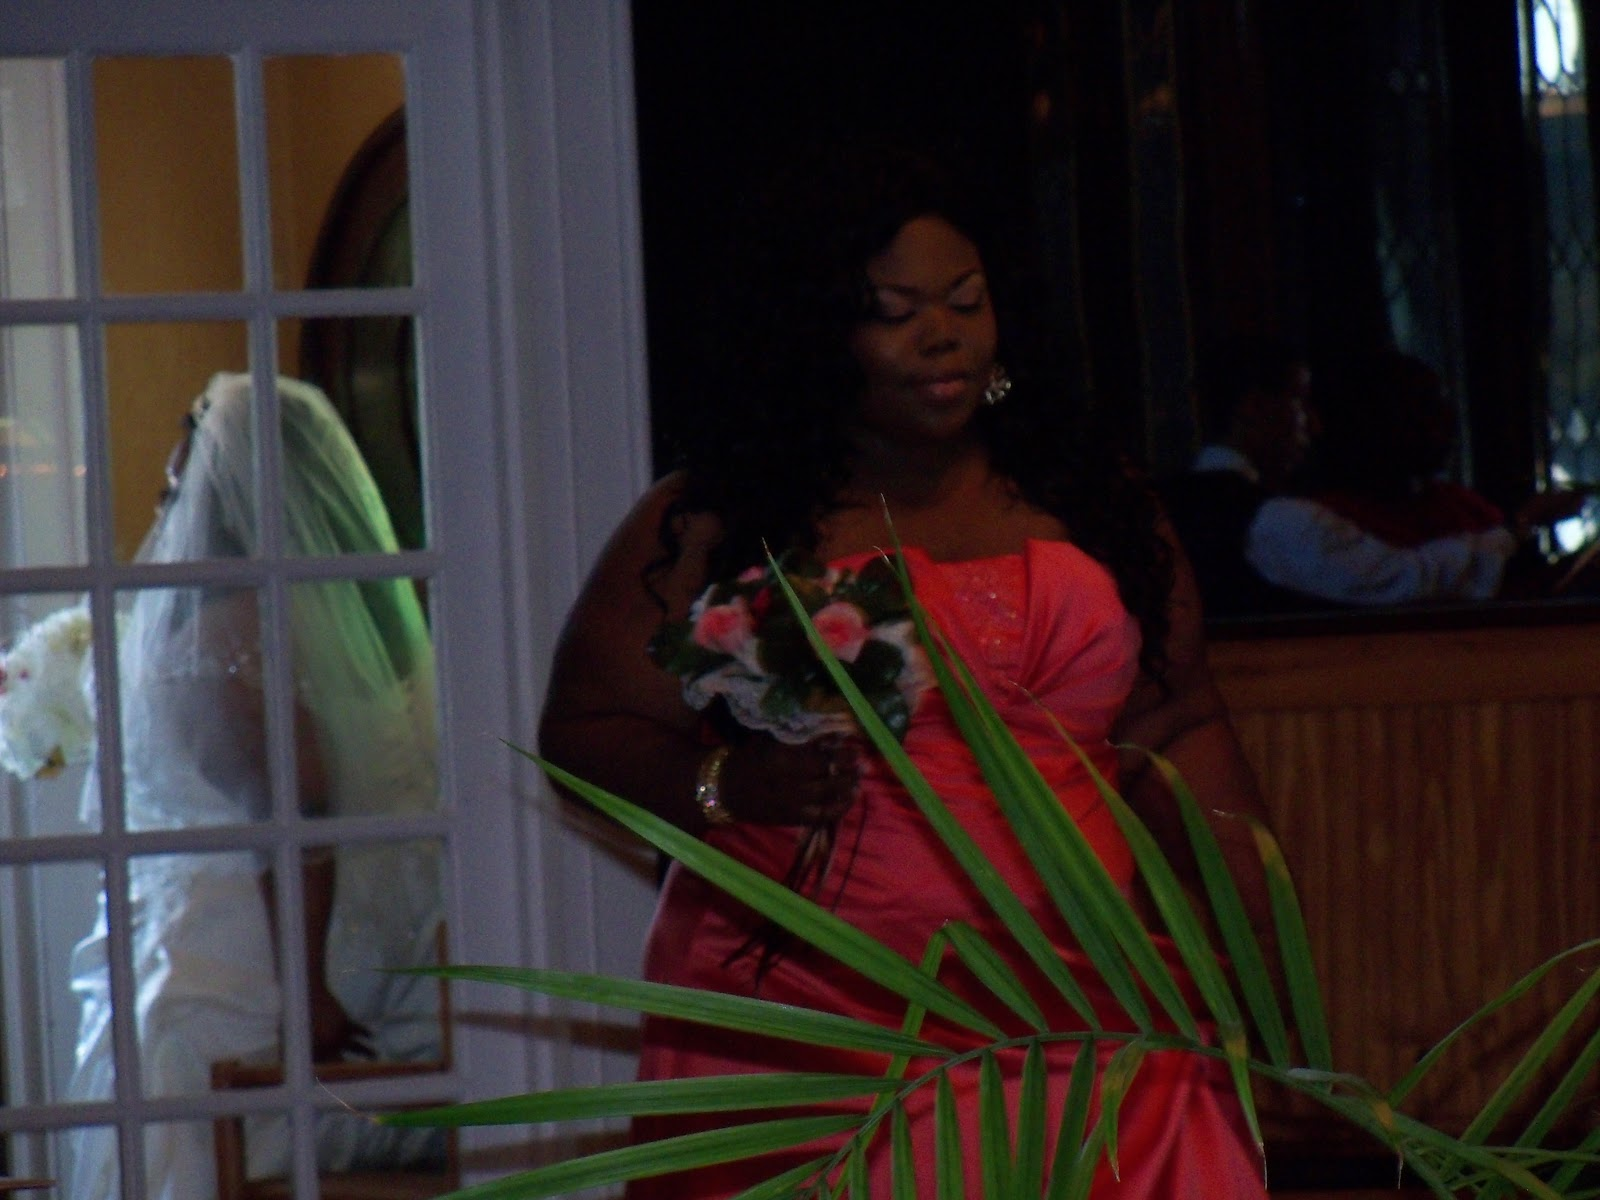 MeChaia Lunn and Clyde Longs wedding - 101_4552.JPG